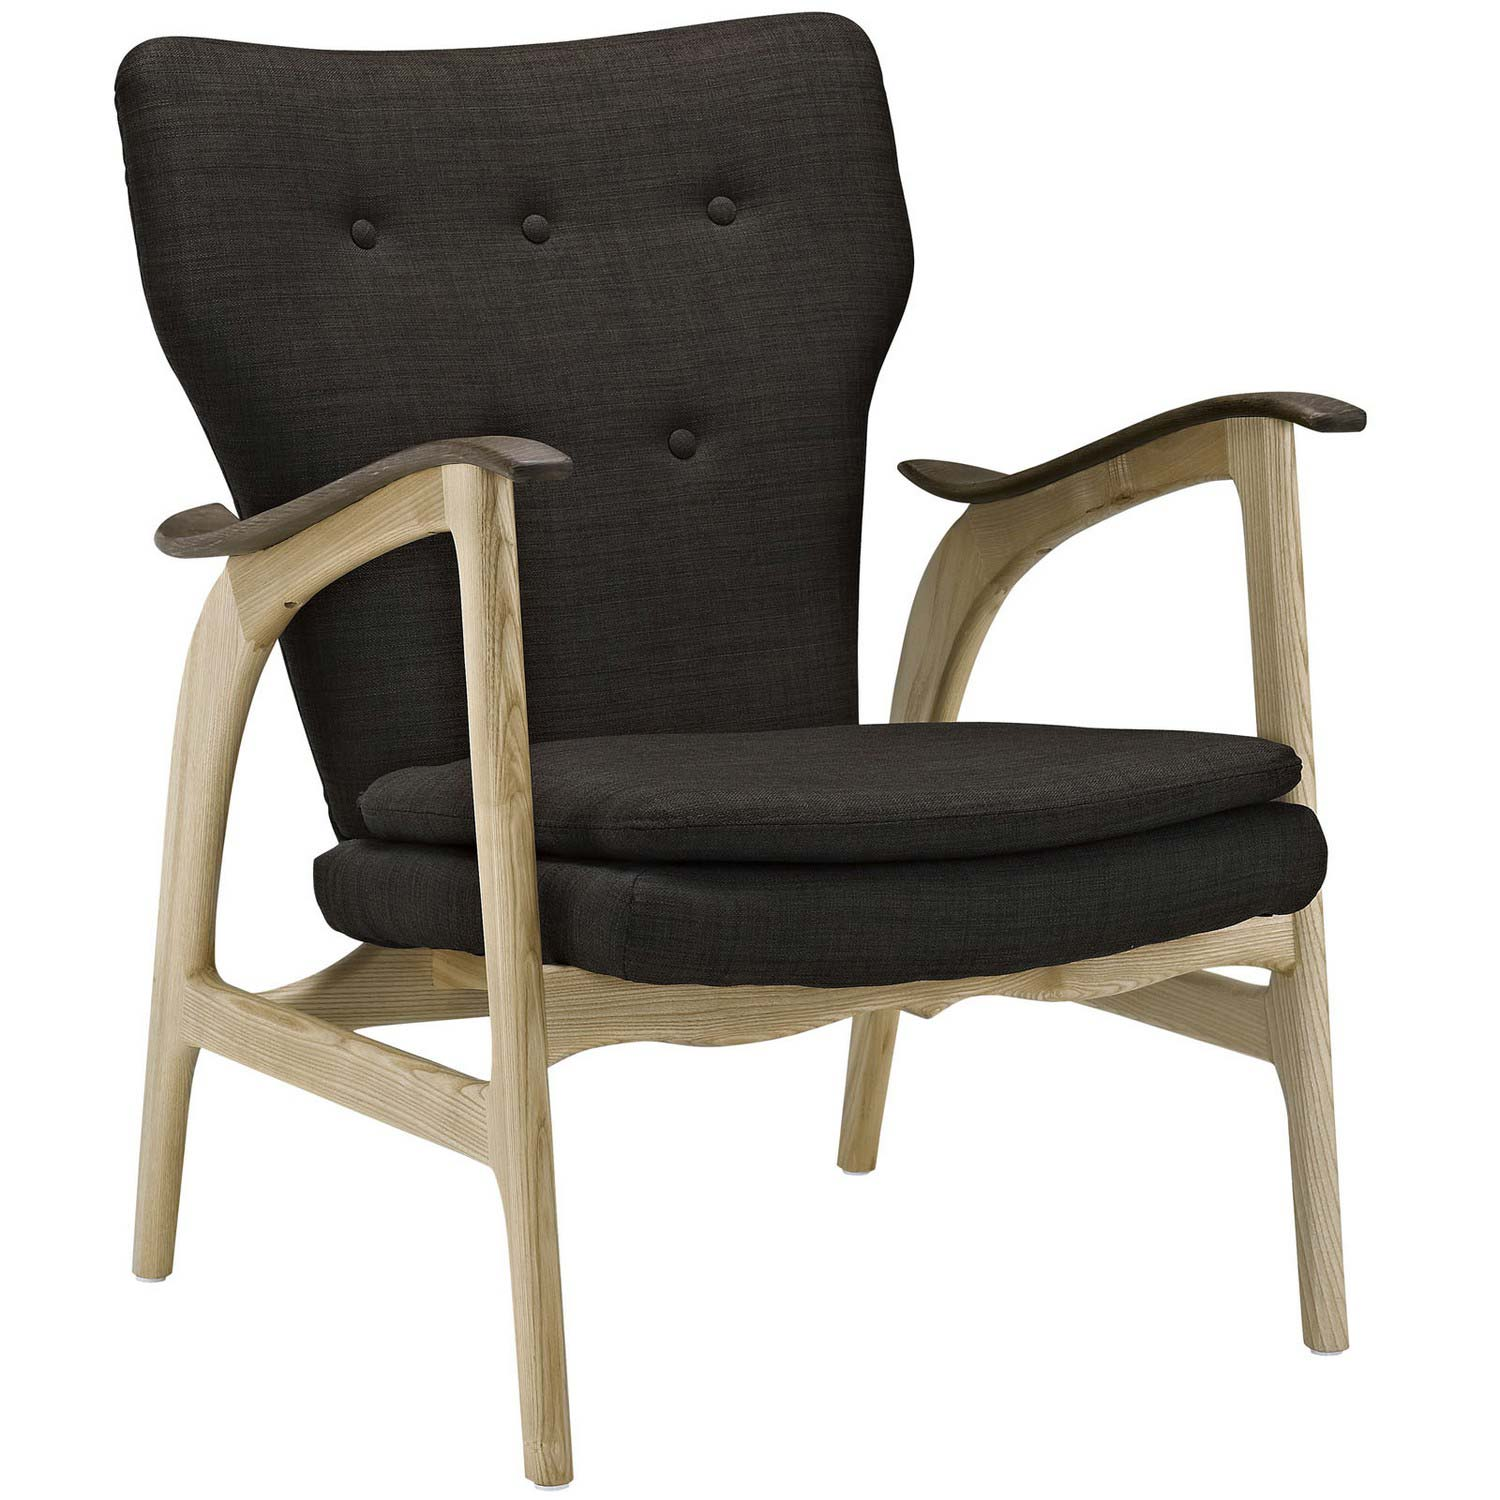 Modway Counsel Lounge Chair - Natural Brown